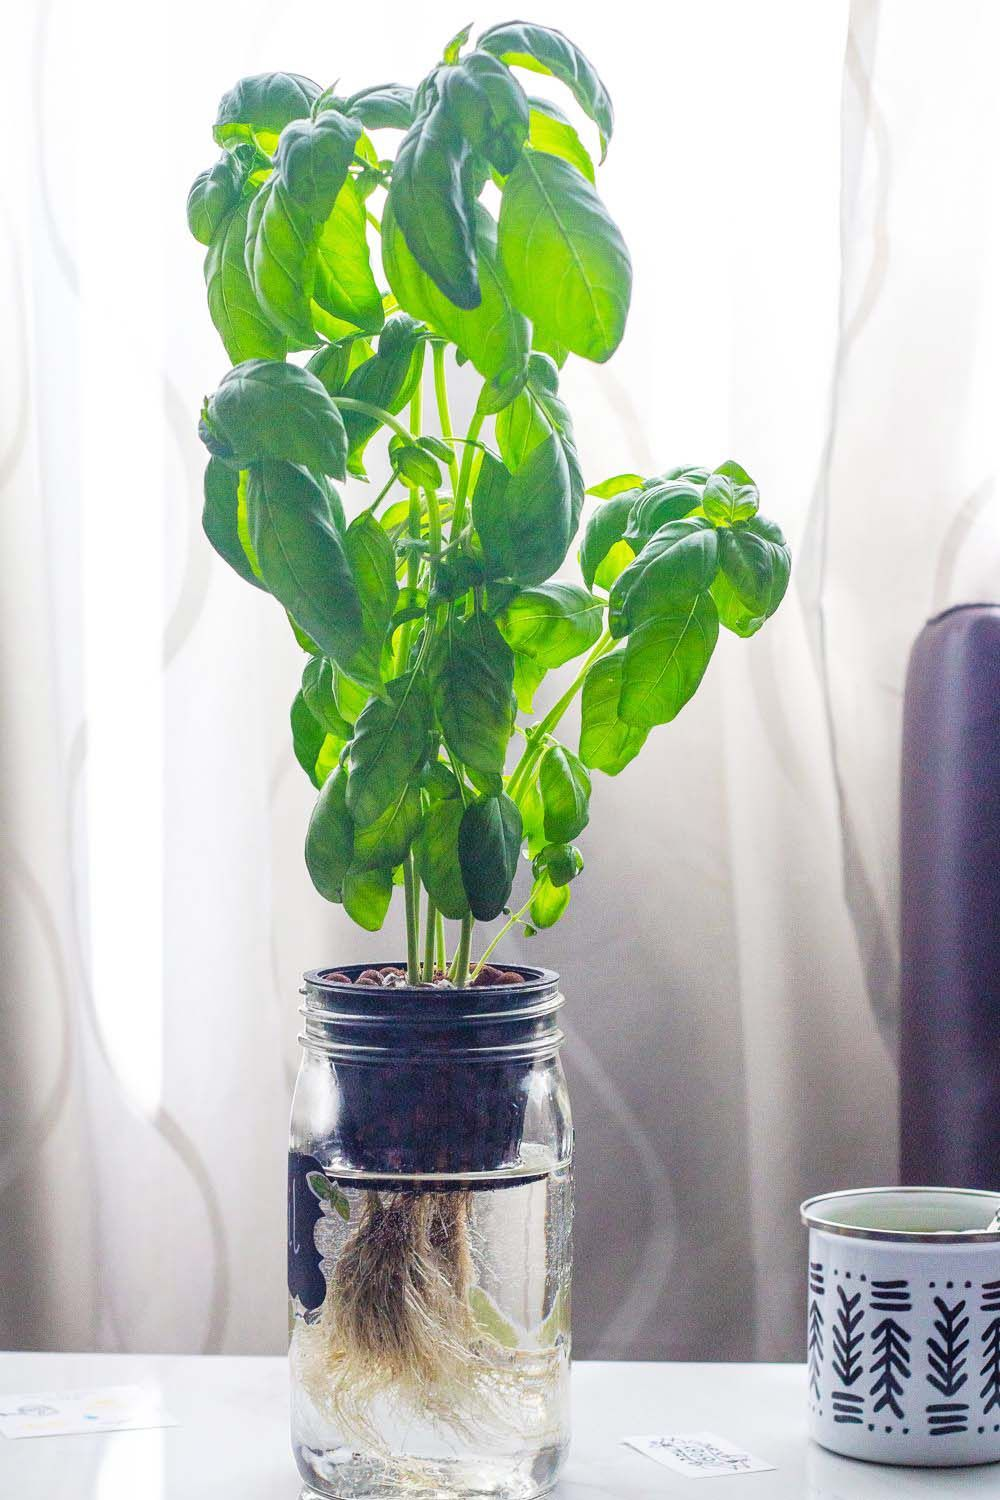 20 incredible ideas for diy hydroponic garden in 2020